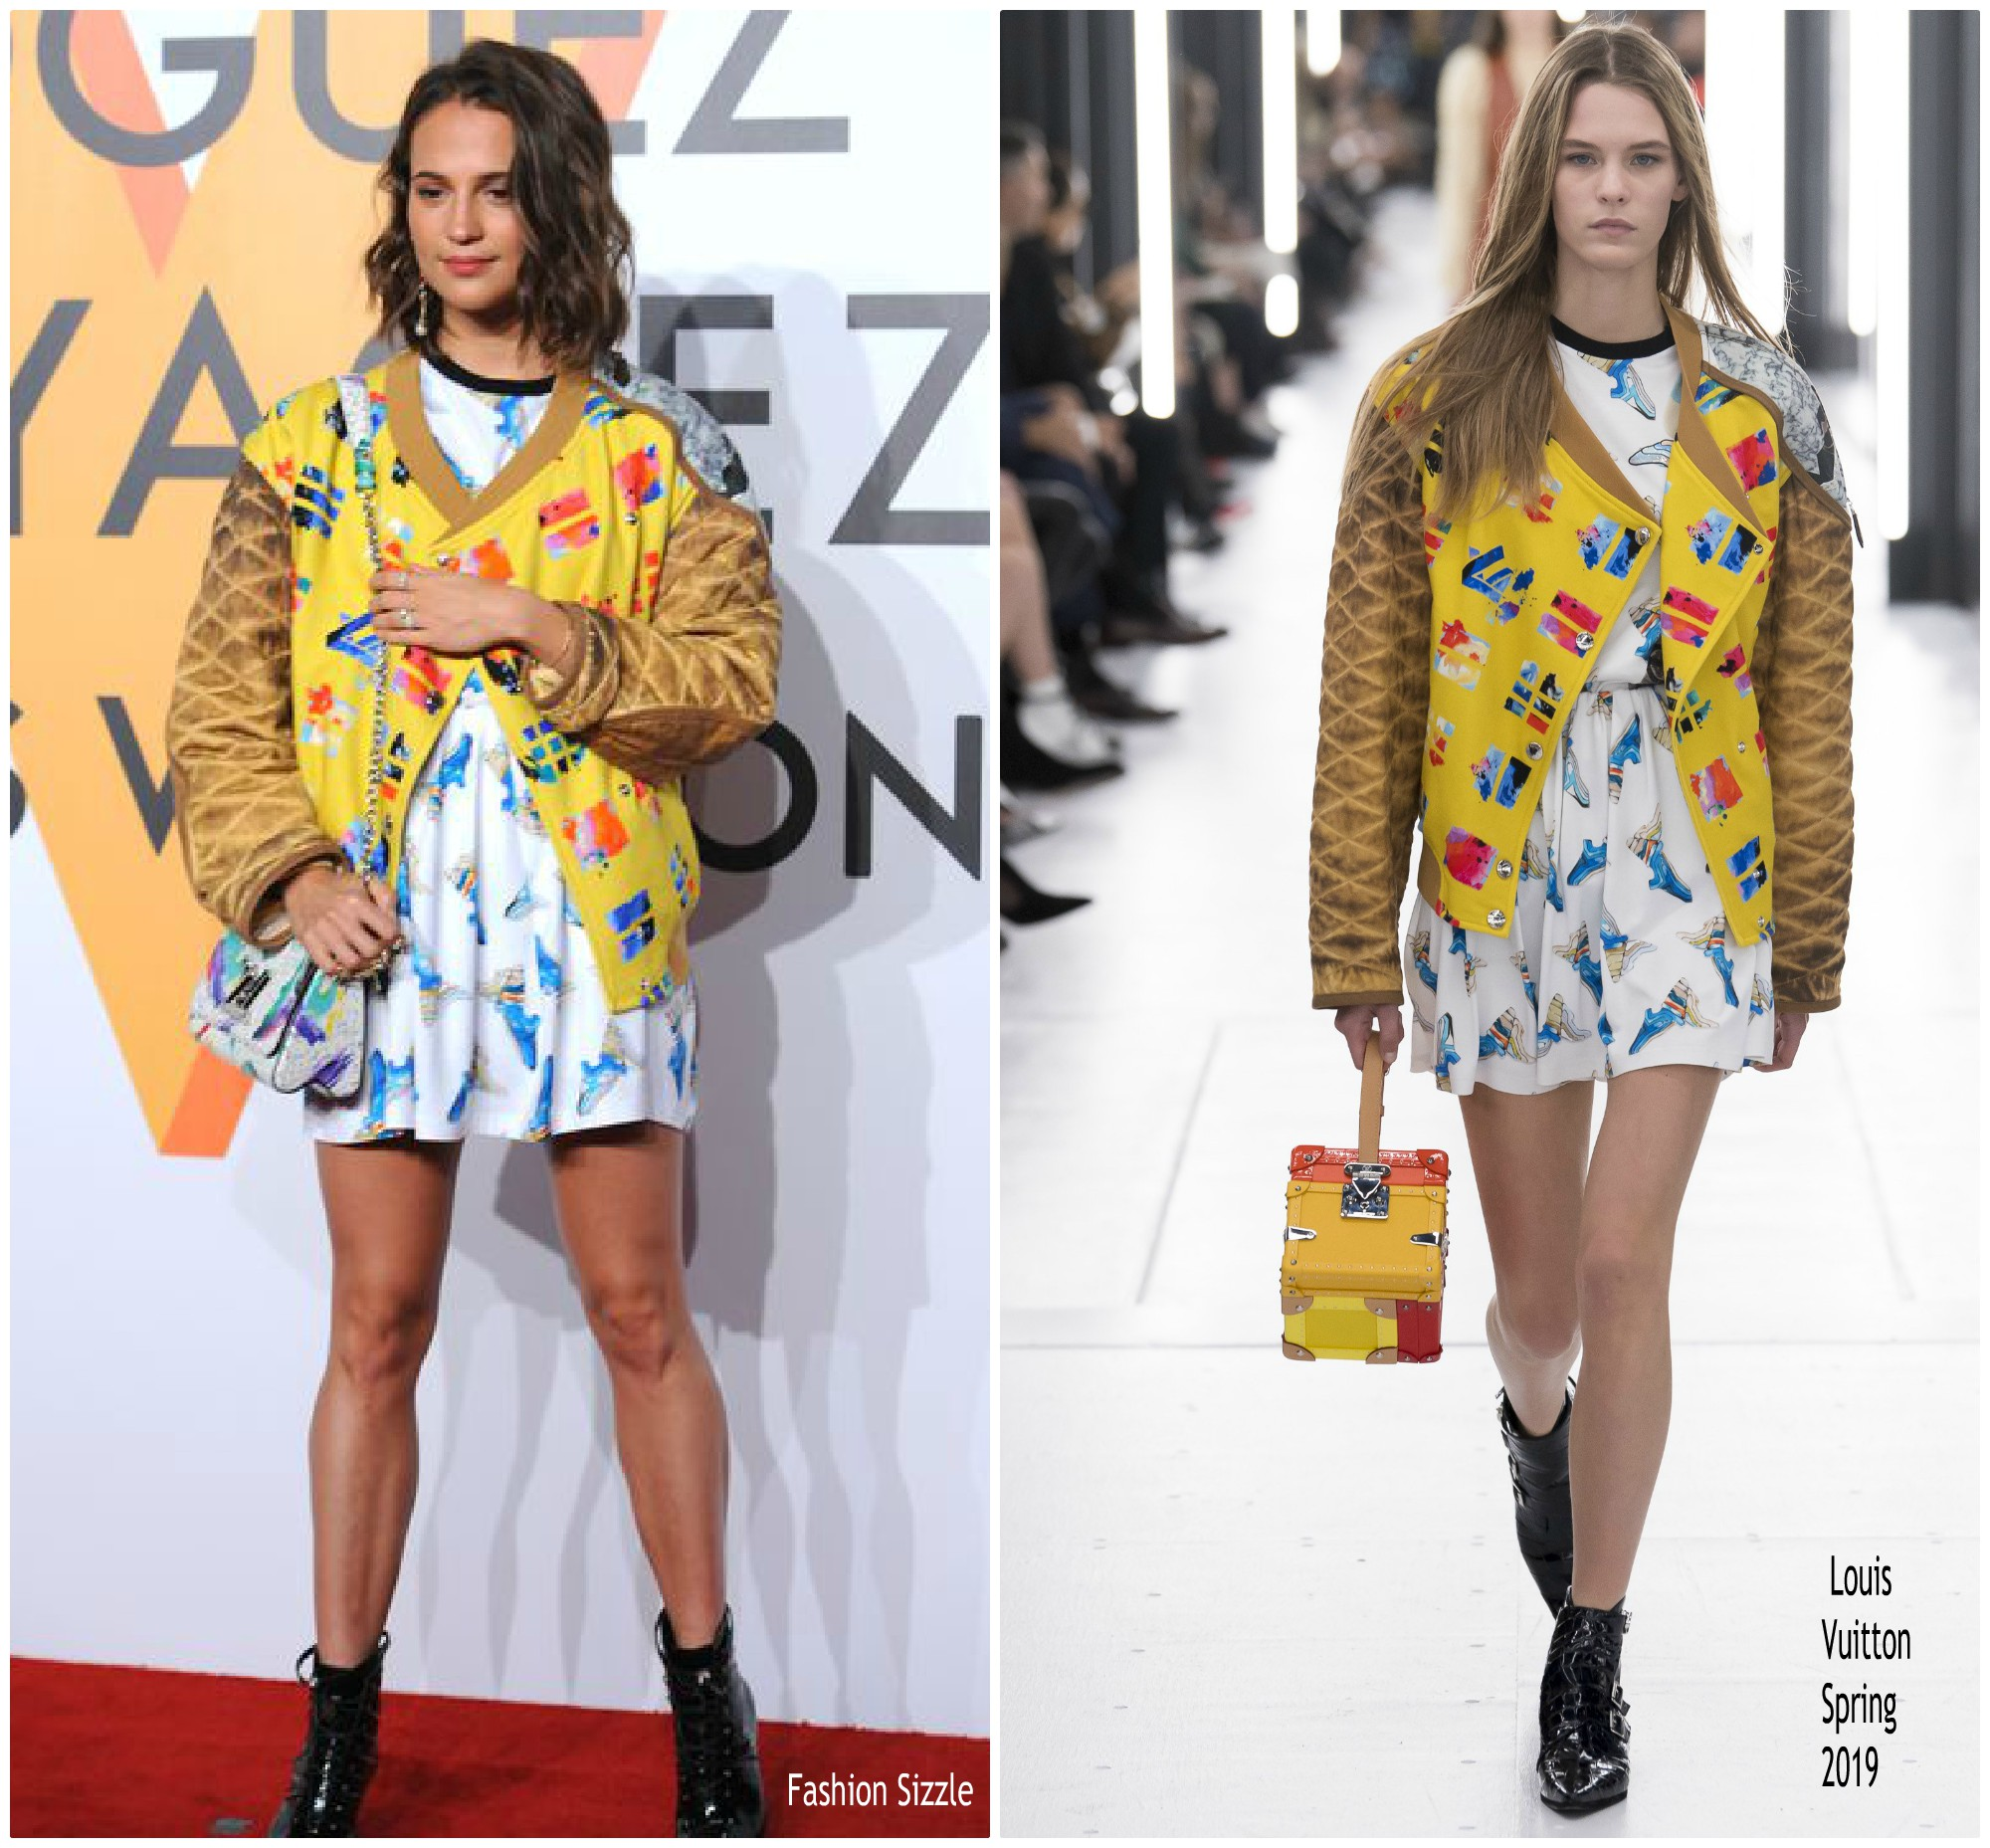 alicia-vikander-in-louis-vuitton-volez-voguez-voyagez-shanghai-exhibition-opening